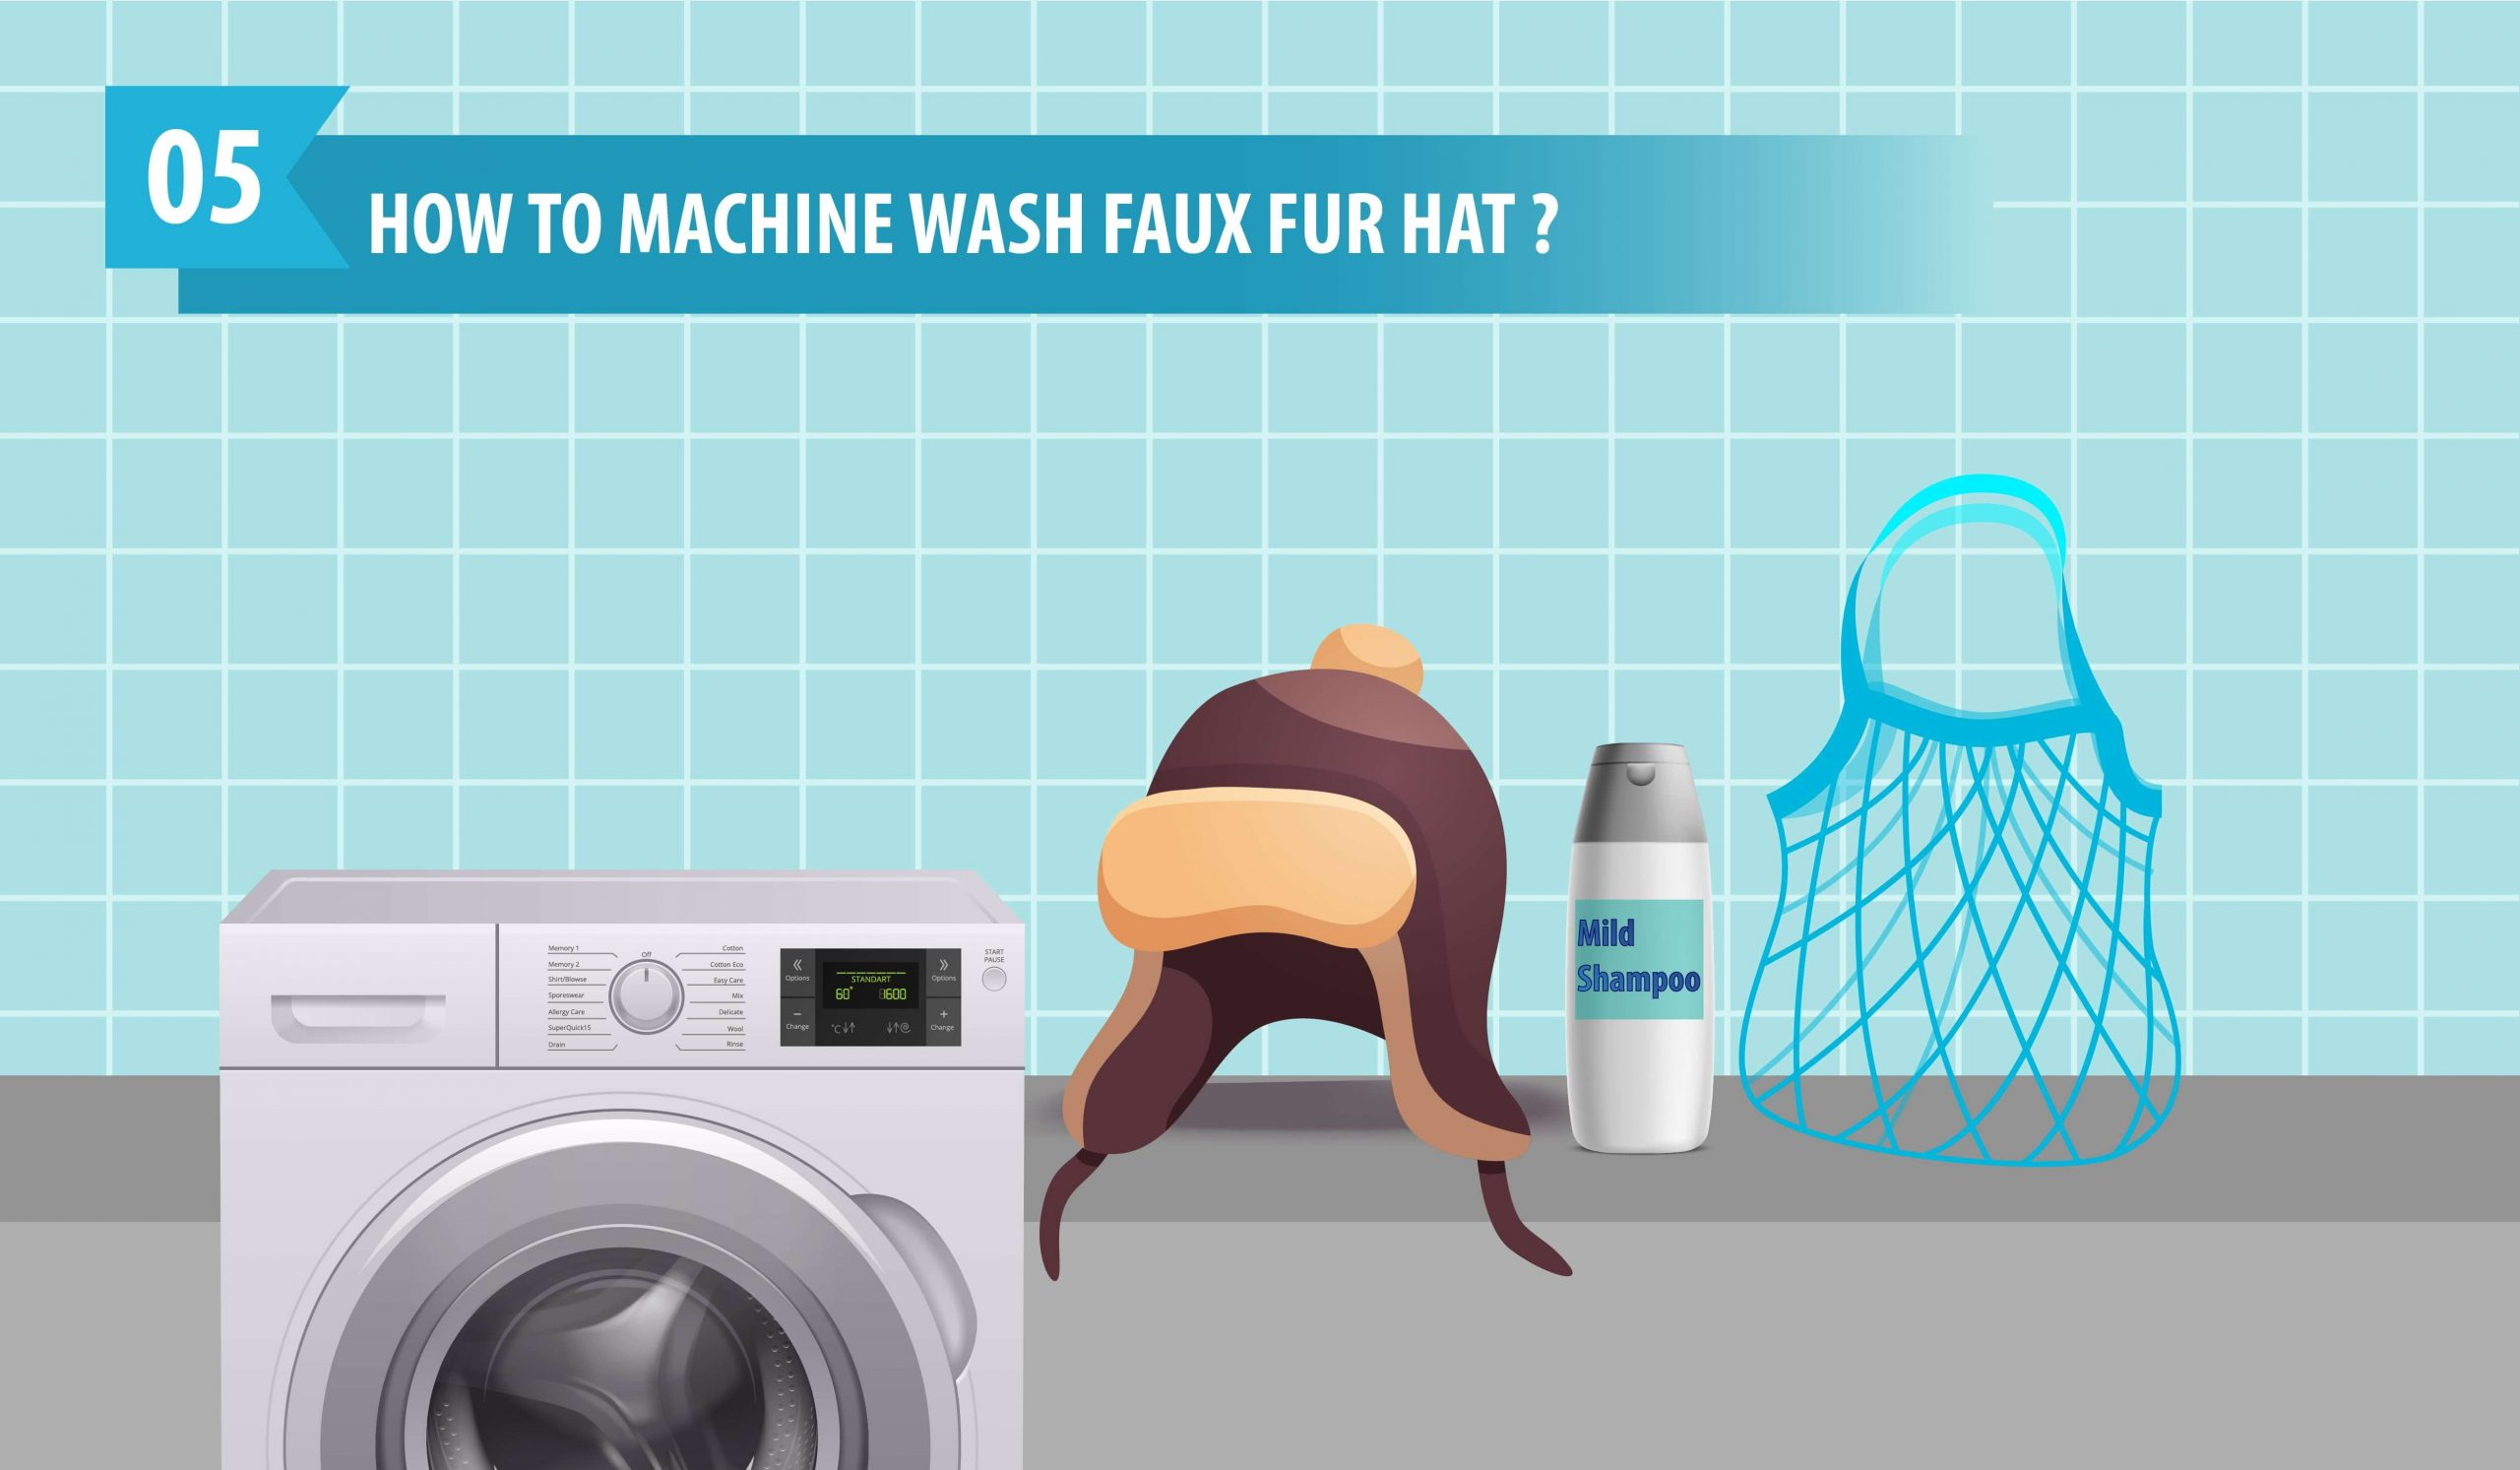 How to Machine Wash A Faux Fur Hat